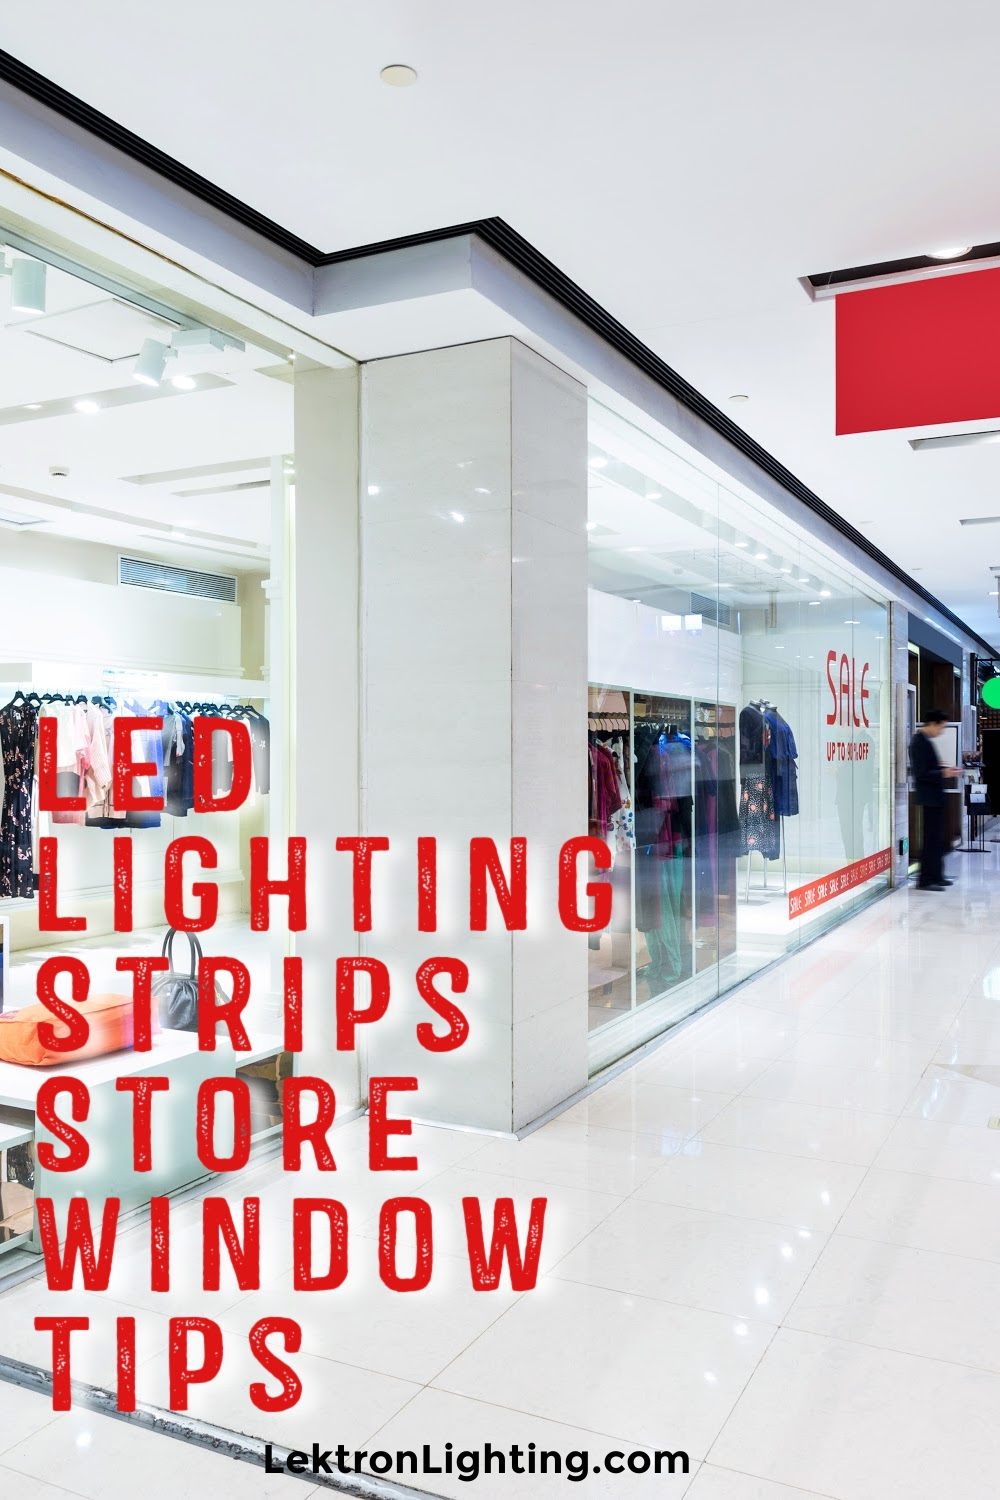 LED lighting strip tips for store windows could help you draw in attention from the street in ways that are modern and energy efficient.